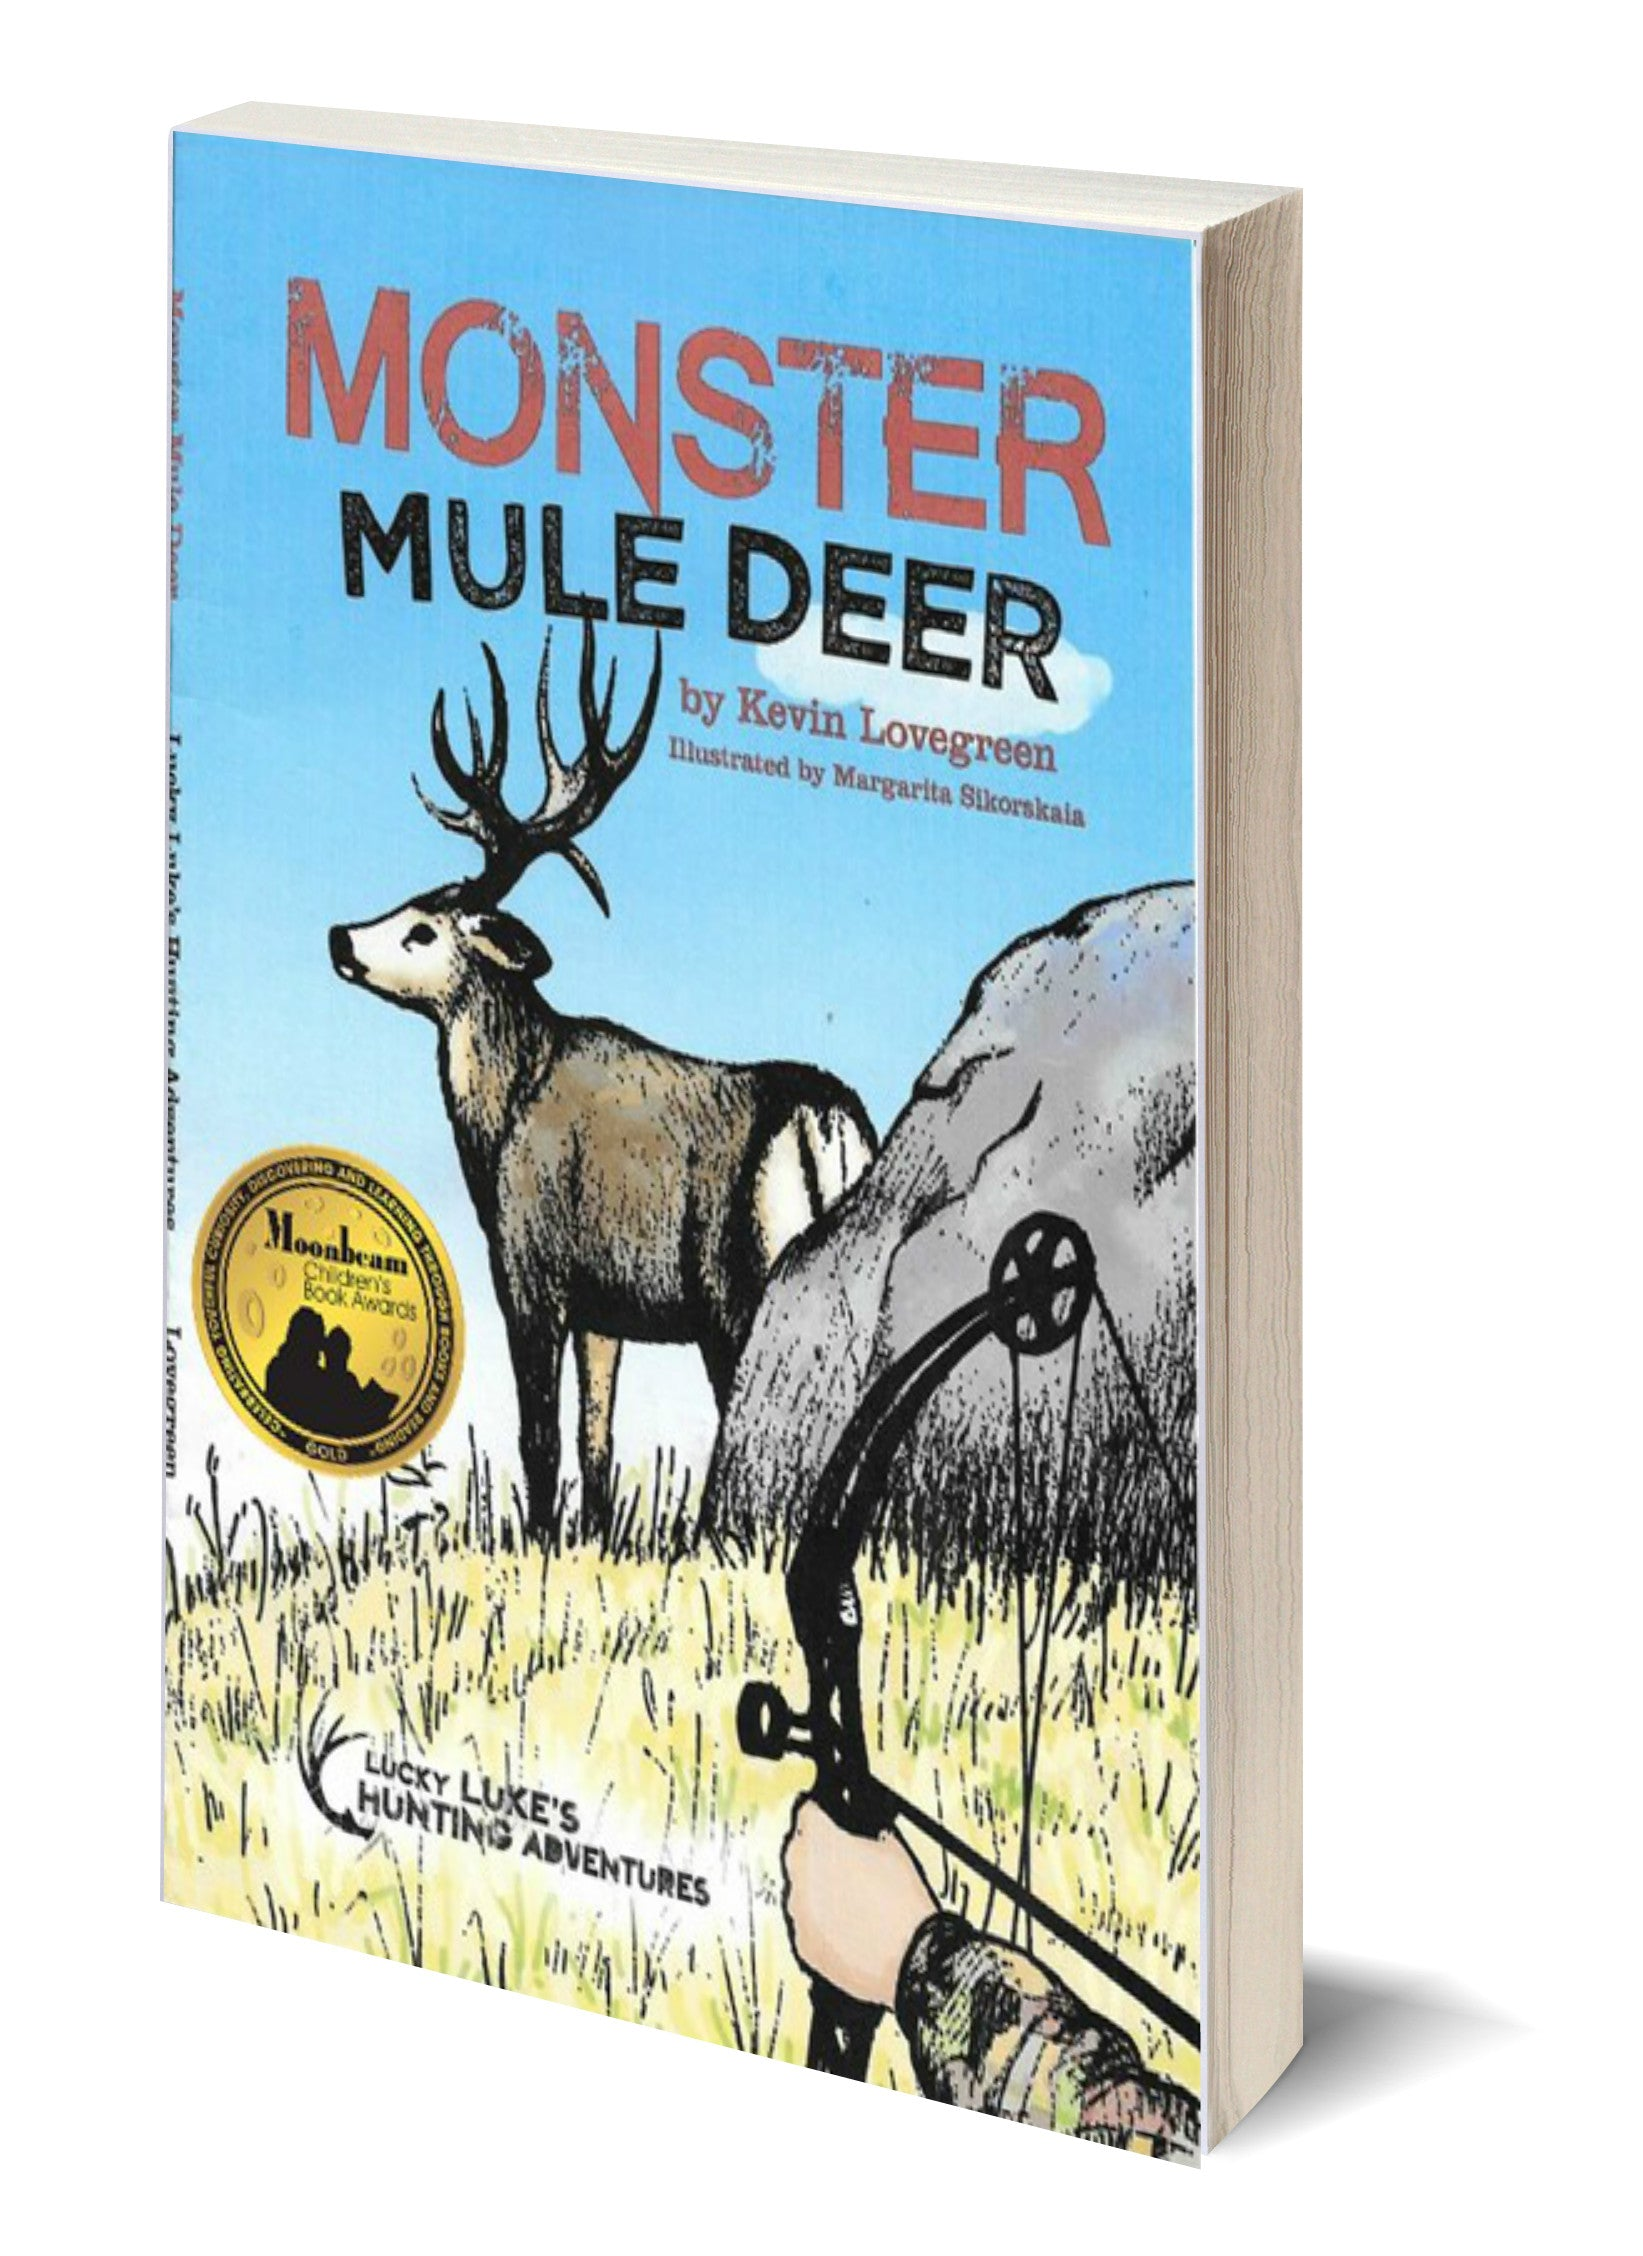 Monster Mule Deer Children S Books By Kevin Lovegreen Kevin Lovegreen Author Minnesota Does not contain any of the 8 major allergens. monster mule deer